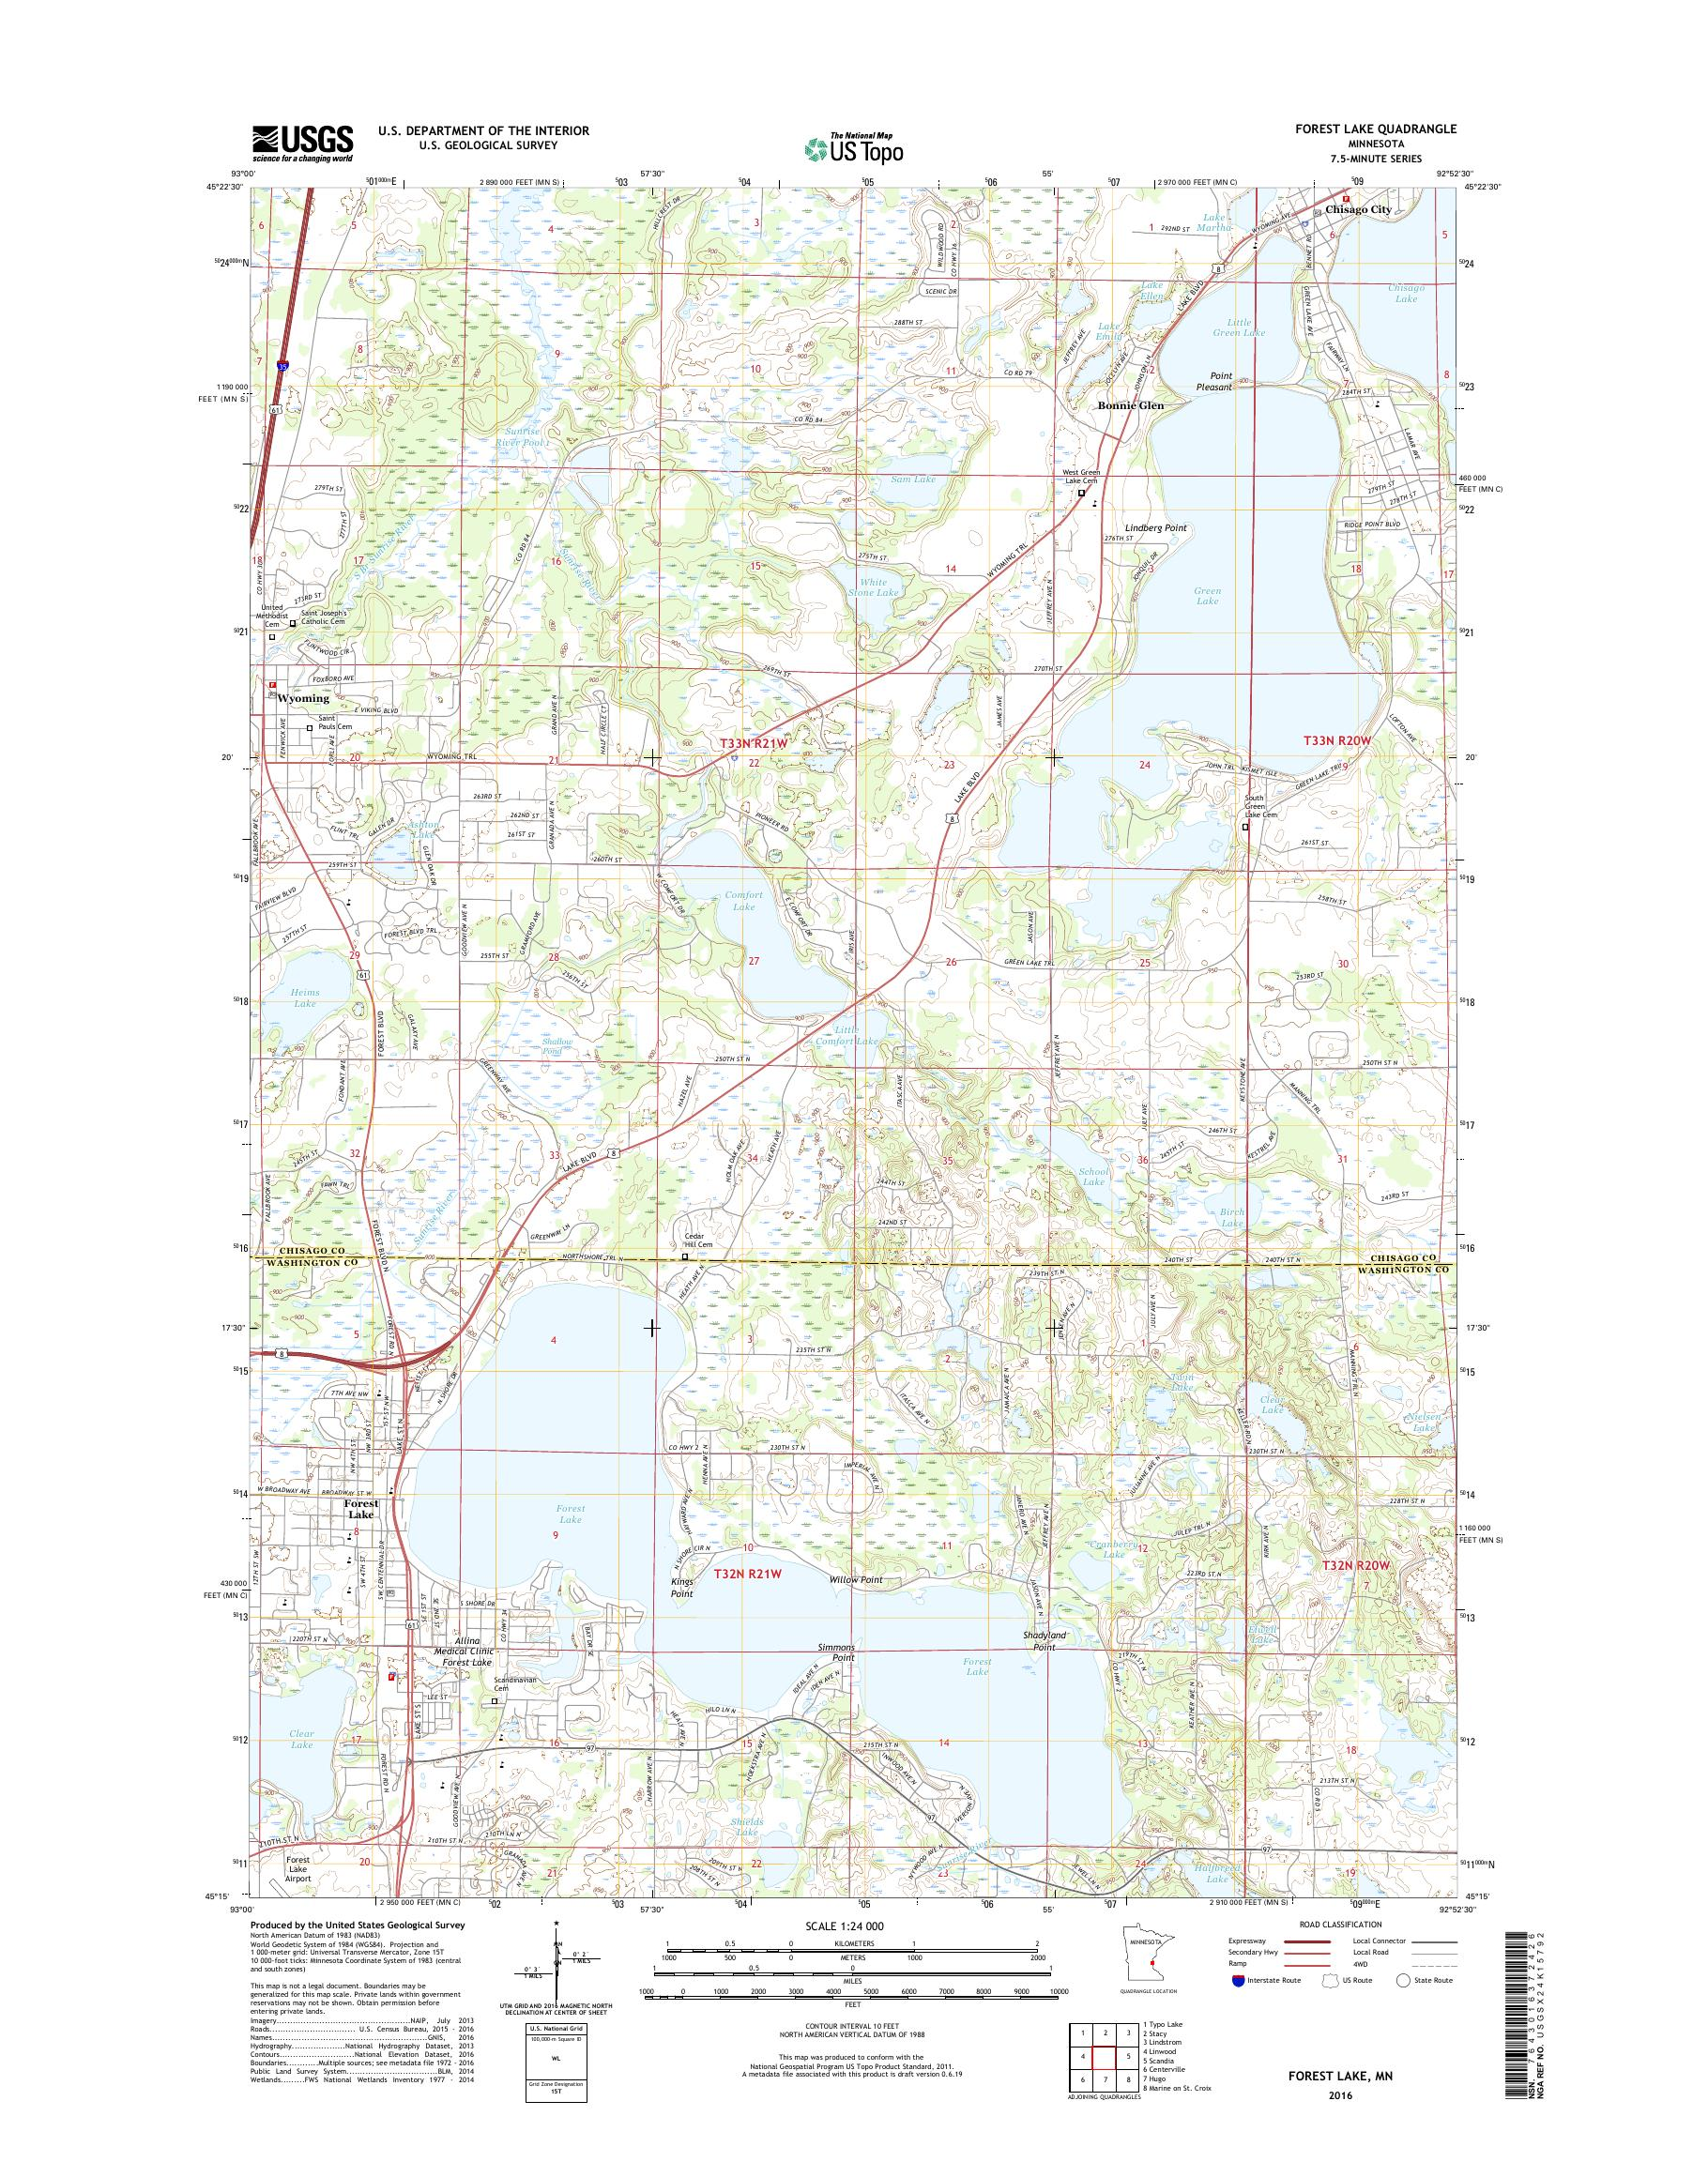 MyTopo Forest Lake, Minnesota USGS Quad Topo Map on map of lindstrom, jennifer dervie forest lake mn, beaver lake ellendale mn, city of lake city mn, map of lake forest ca, superior national forest maps mn, lake of the woods mn, map of lake johanna mn, downtown forest lake mn, sugar lake annandale mn, fenway park forest lake mn, map of lake independence mn, map of hinckley water, map of lake washington mn, map of twin cities and surrounding suburbs, minnesota cities map mn, map of minnesota, franklin lake pelican rapids mn, map of gem lake mn, detroit lakes mn,